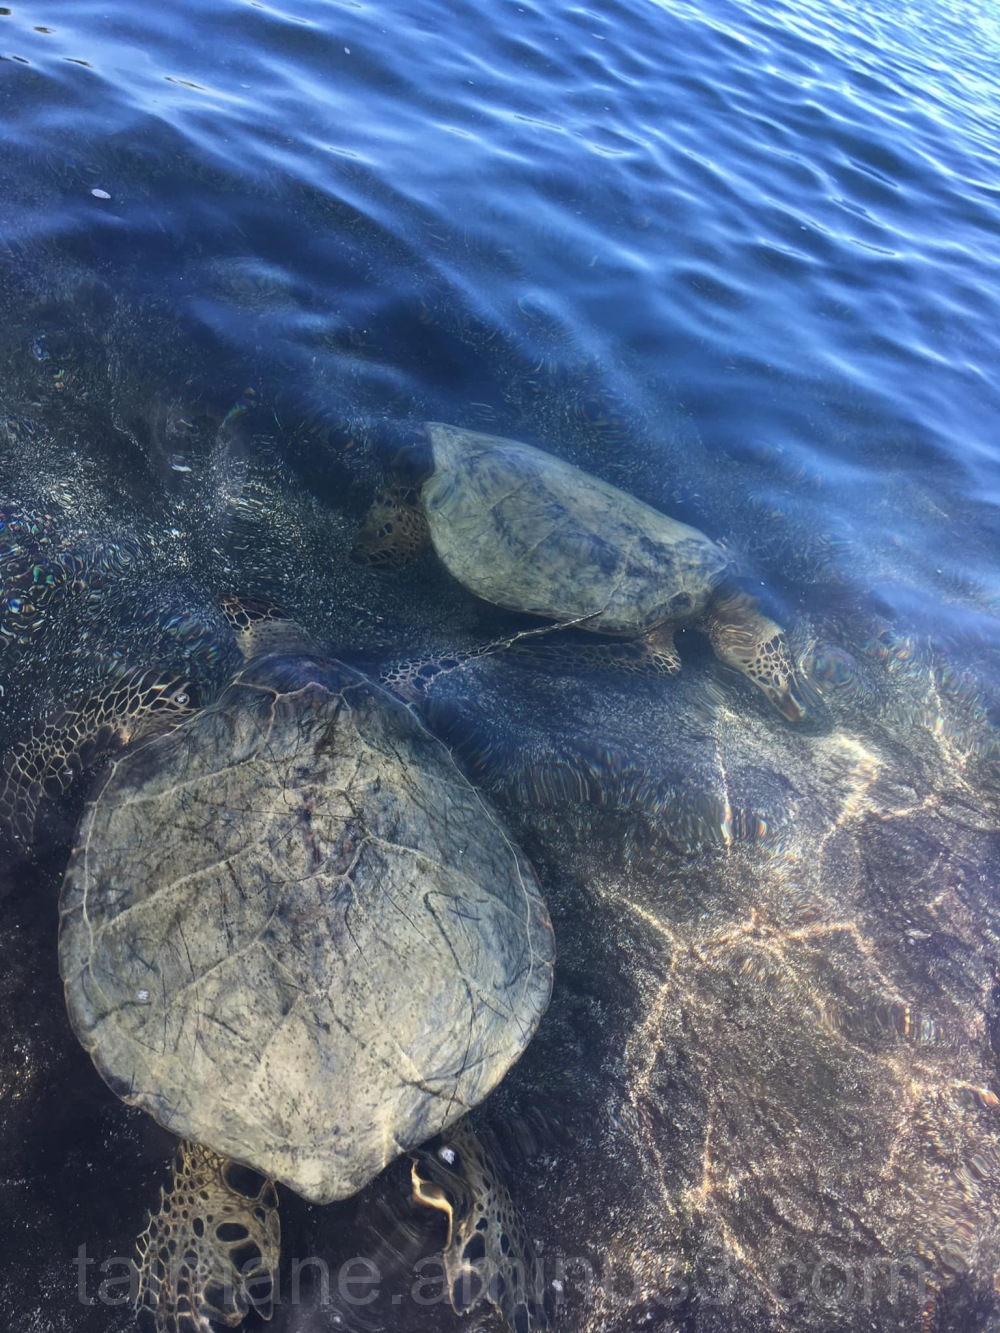 Turtles by bay